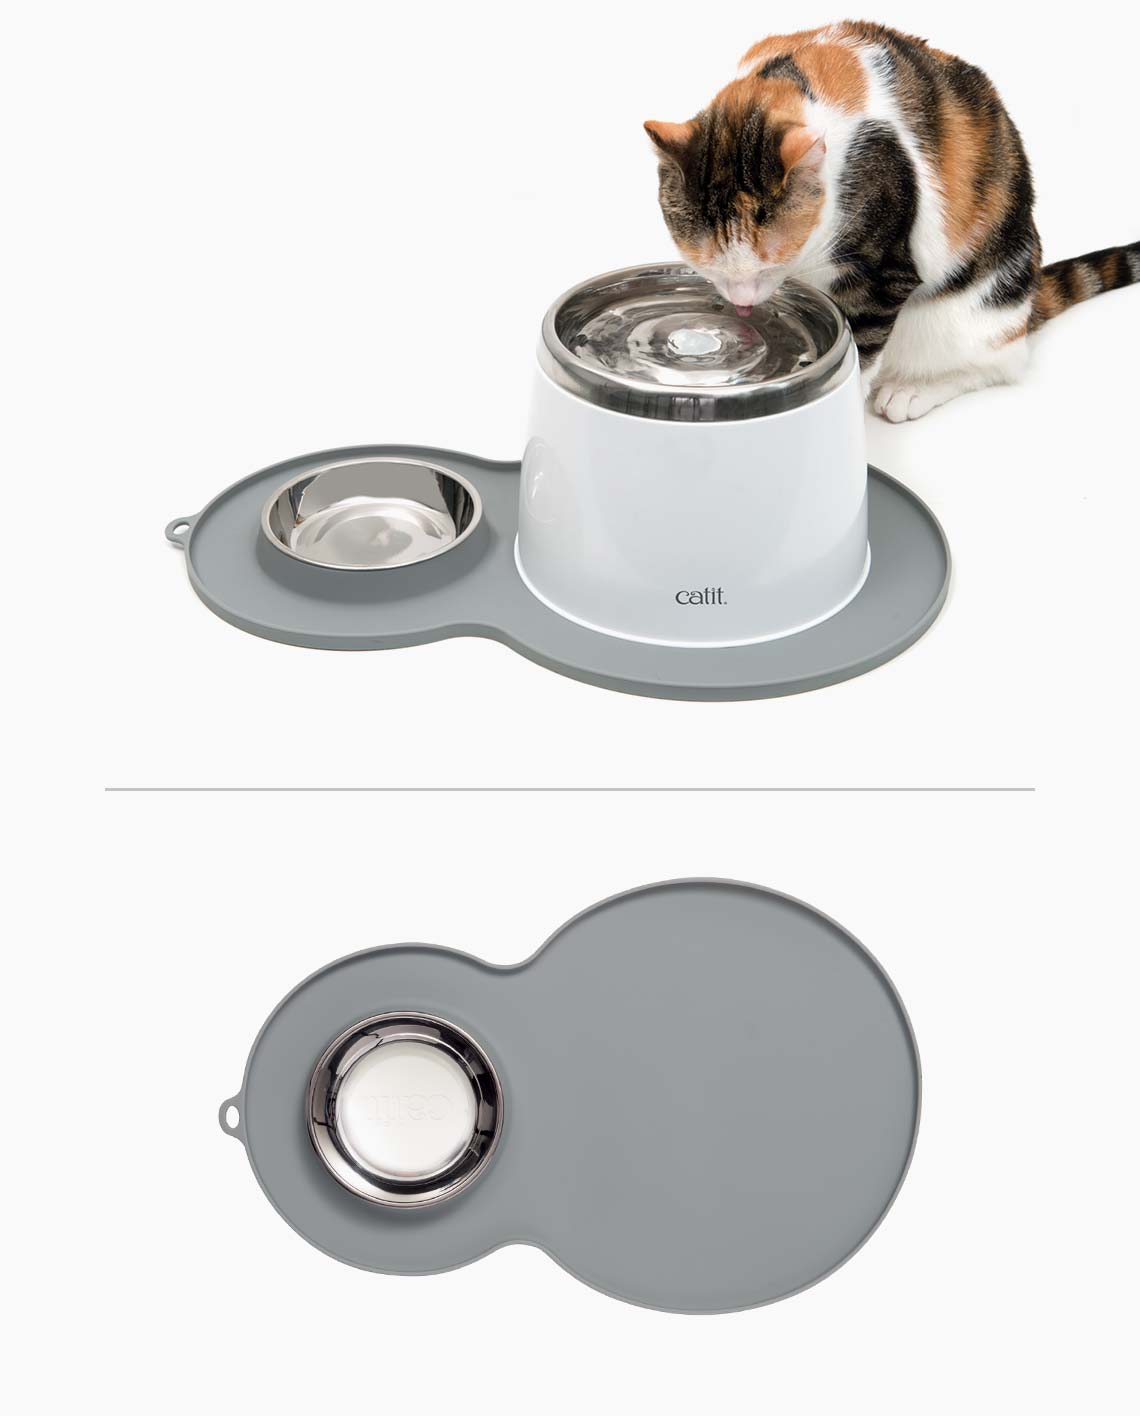 Pixi drinking from a stainless steel drinking fountain